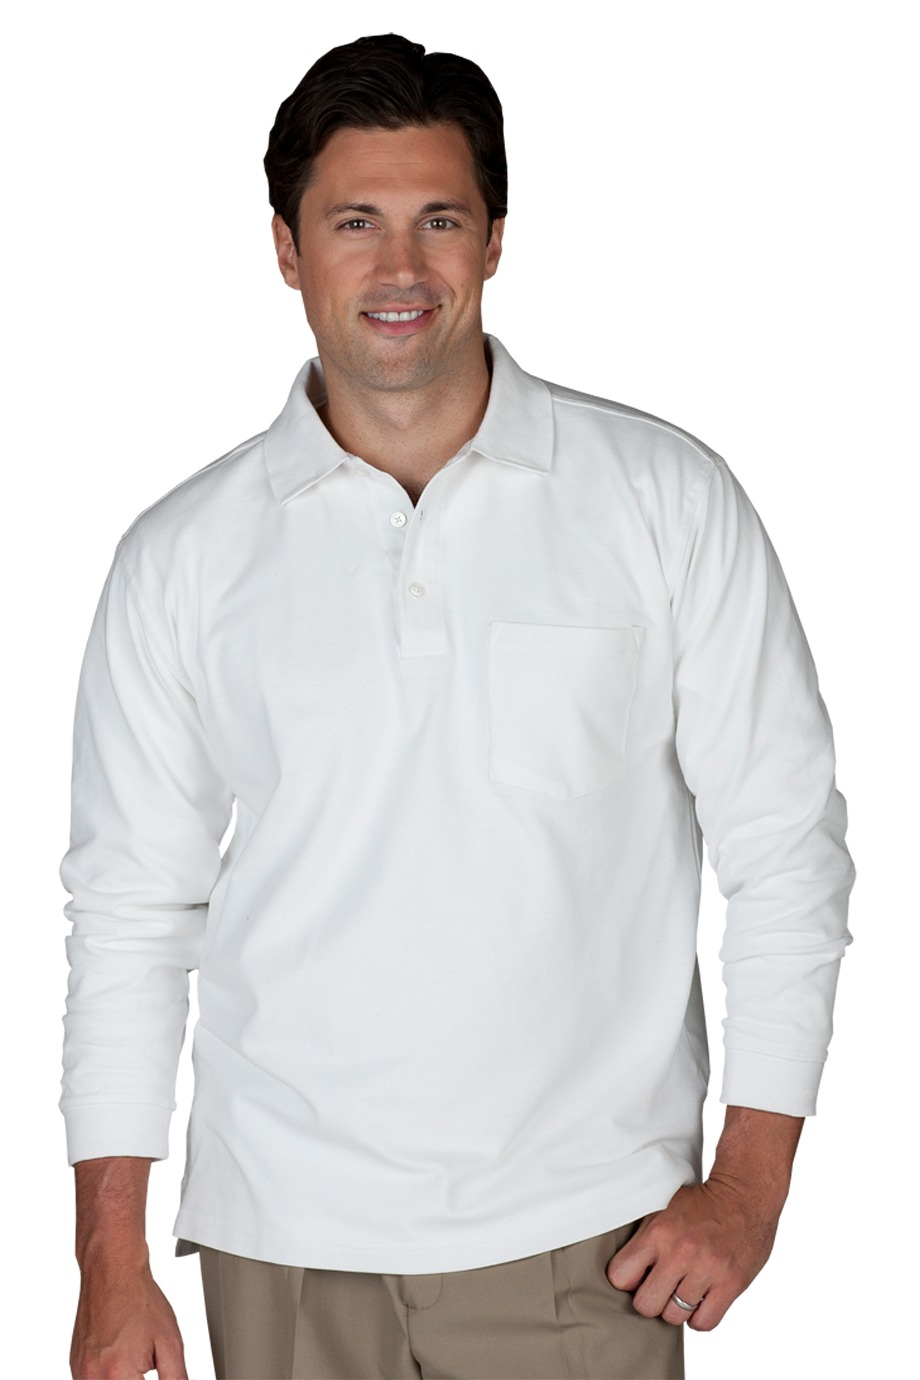 Edwards Garment 1525 - Unisex Long Sleeve Pique Polo ...